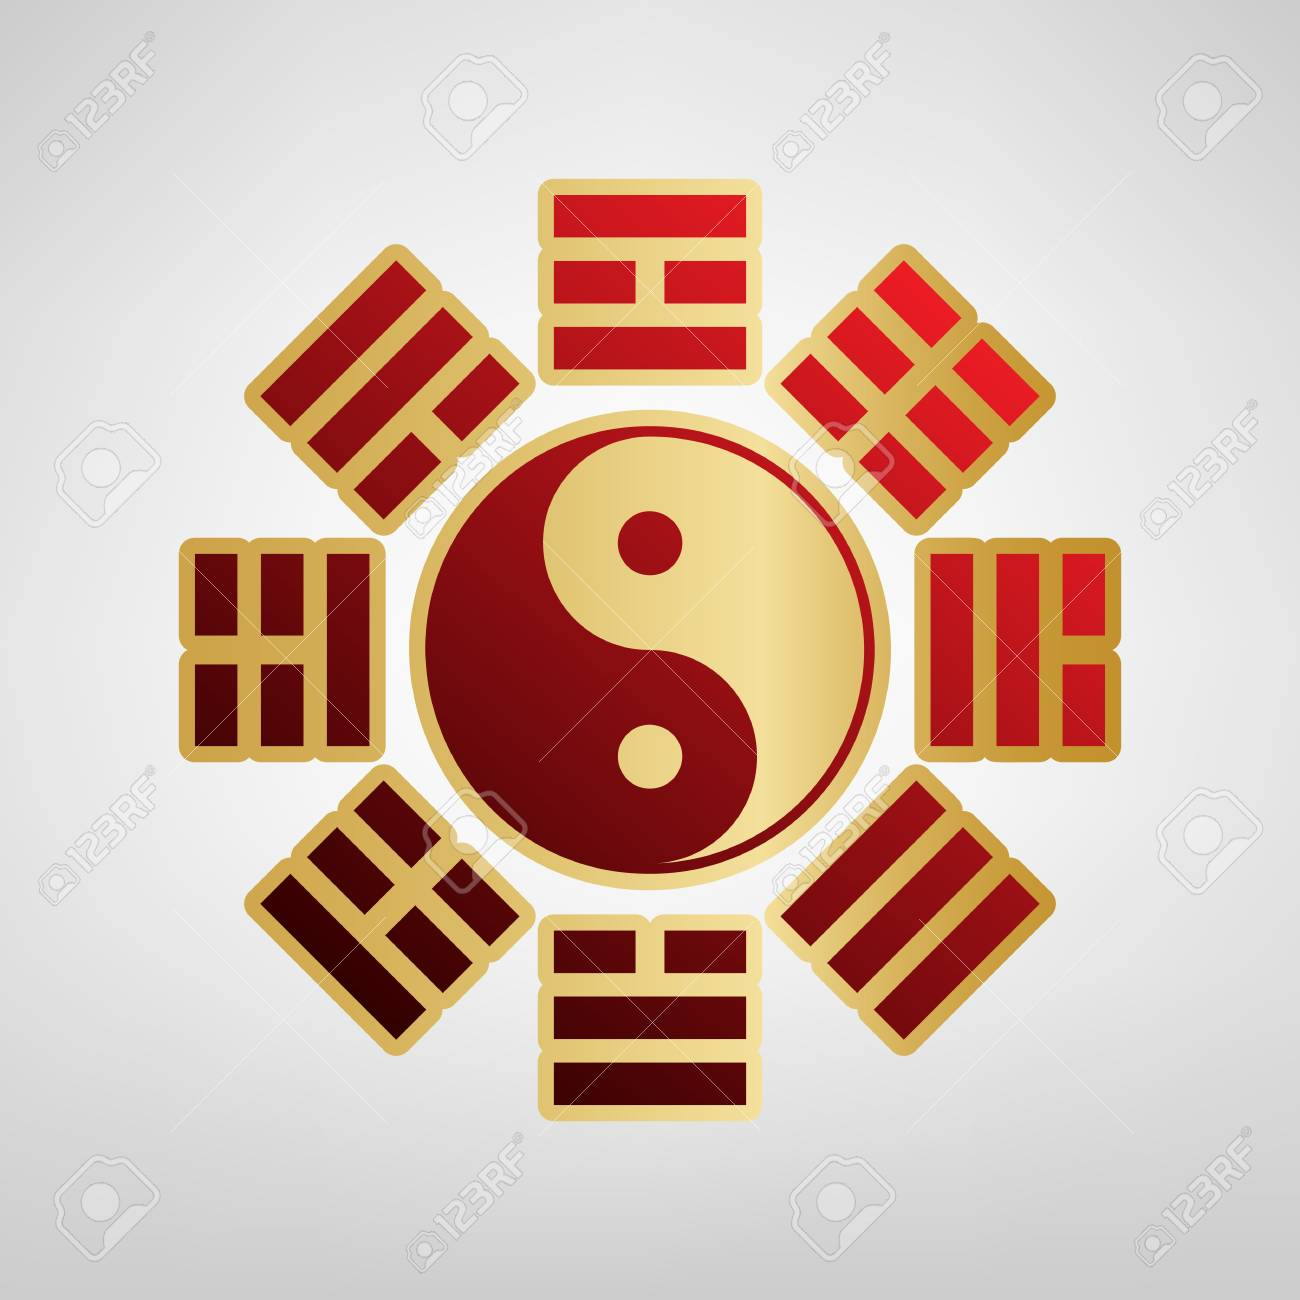 Yin and yang sign with bagua arrangement. Vector. Red icon on gold sticker at light gray background. - 90237105